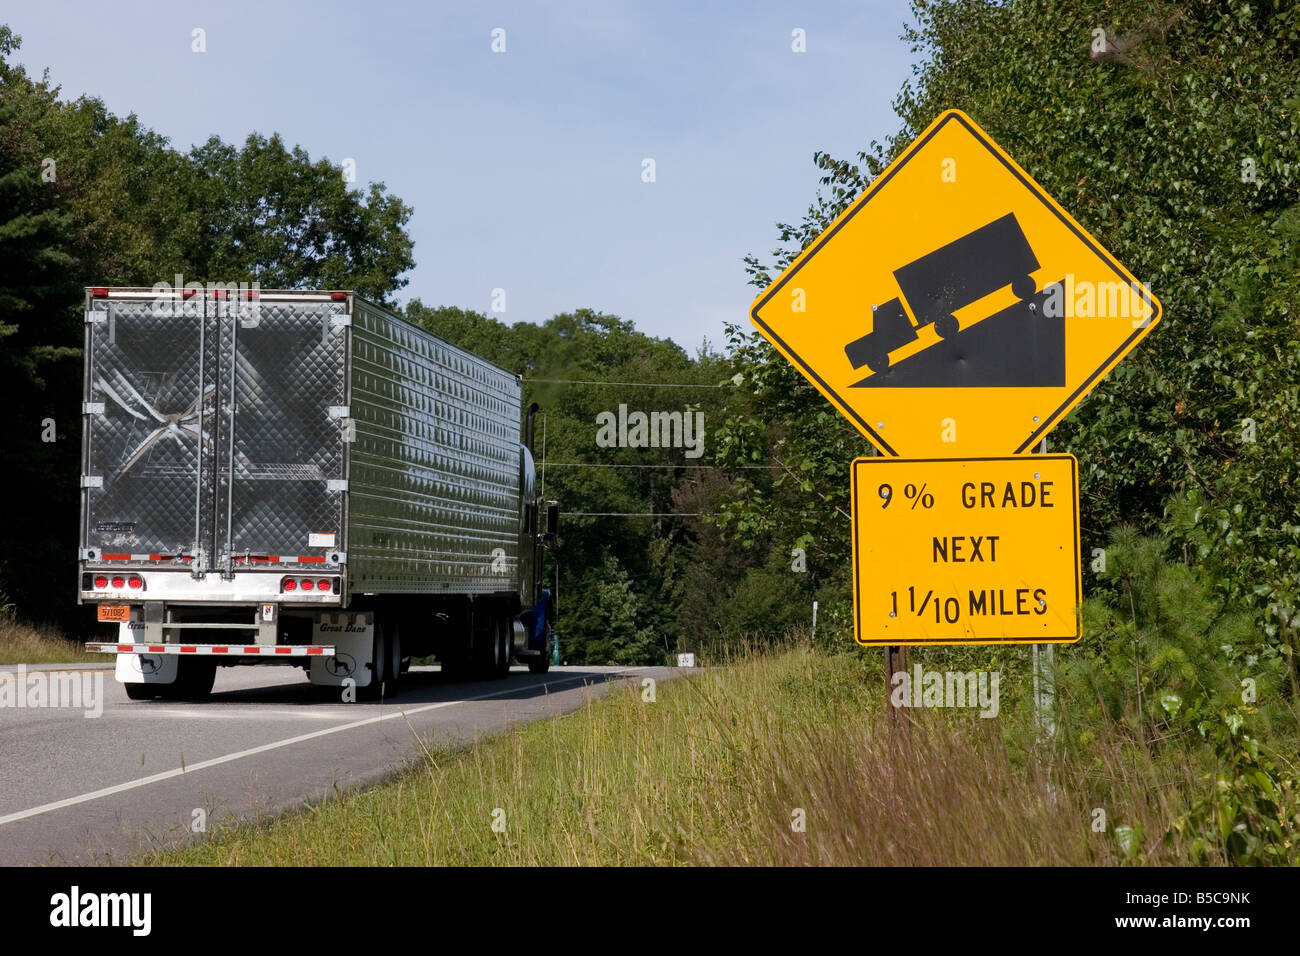 Semi truck drives past a road sign warning drivers of steep hill 9% grade ahead - Stock Image